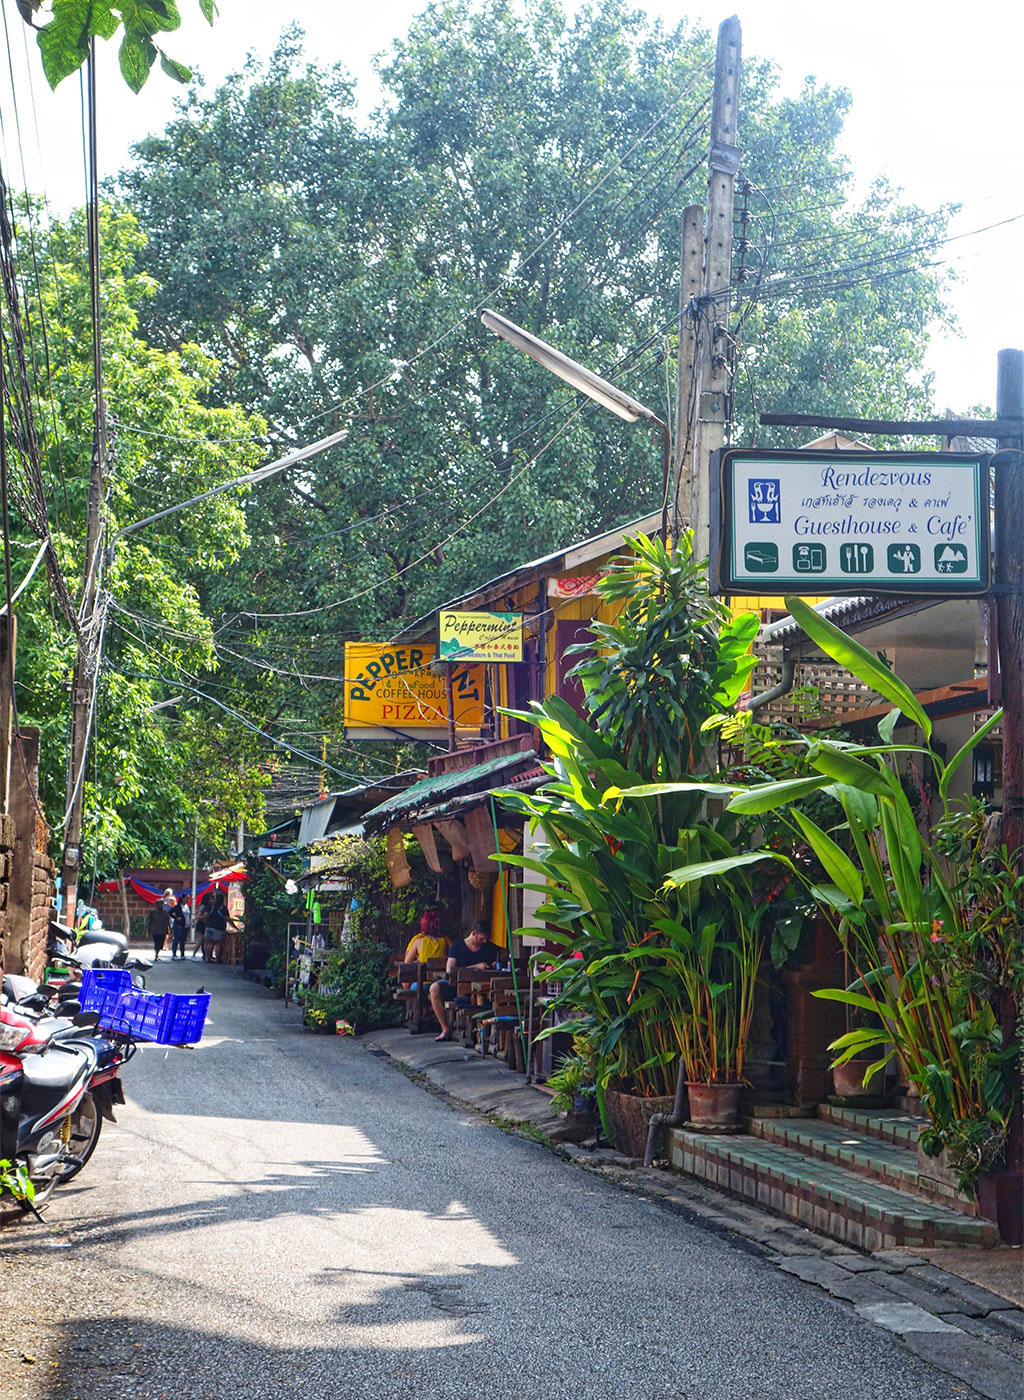 chiang mai hook up Give kao soy a miss and try chiang mai's authentic, spicy, flavorful northern thai food a writer january 12, 2016 start with the pomelo salad, a pitch-perfect balance of spicy, sweet, sour and nutty, toasted flavours.